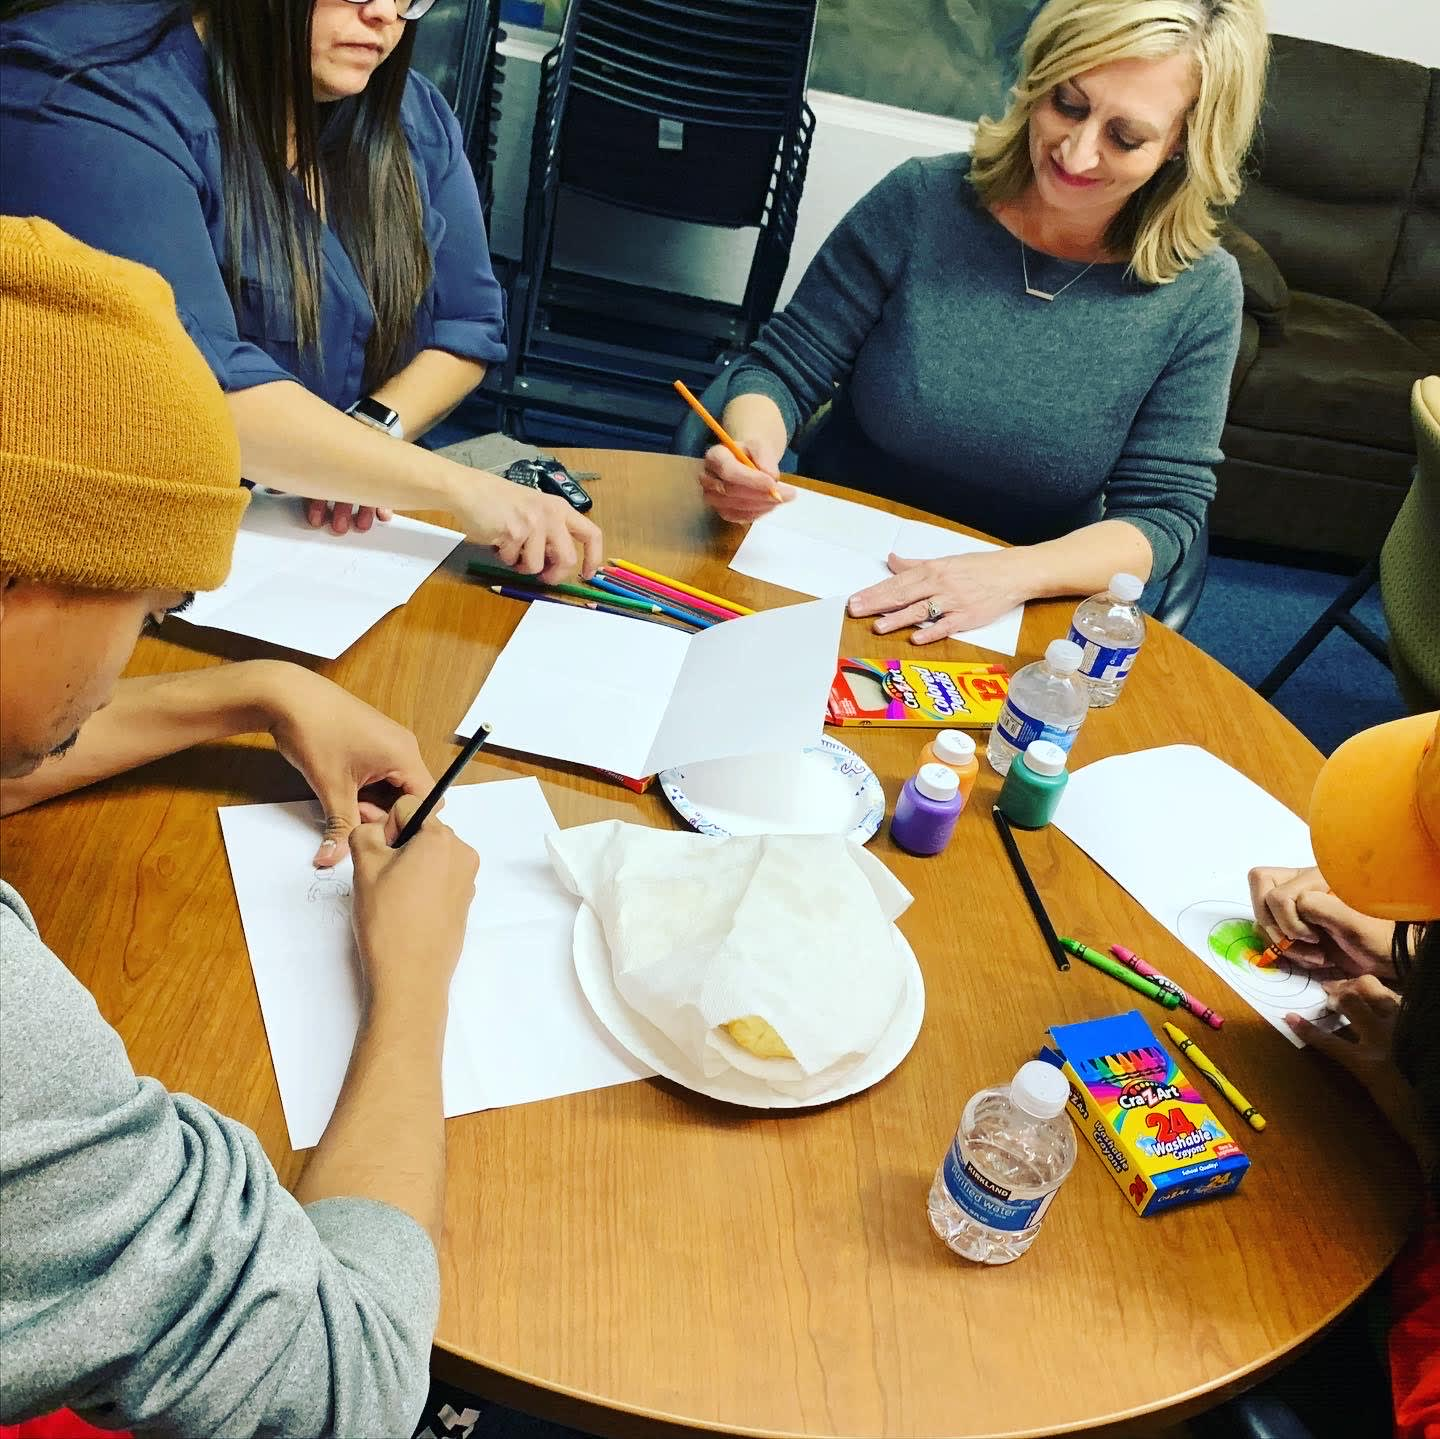 Coping skills activity hosted by NAU OT students for Foster Arizona Housing Project participants.